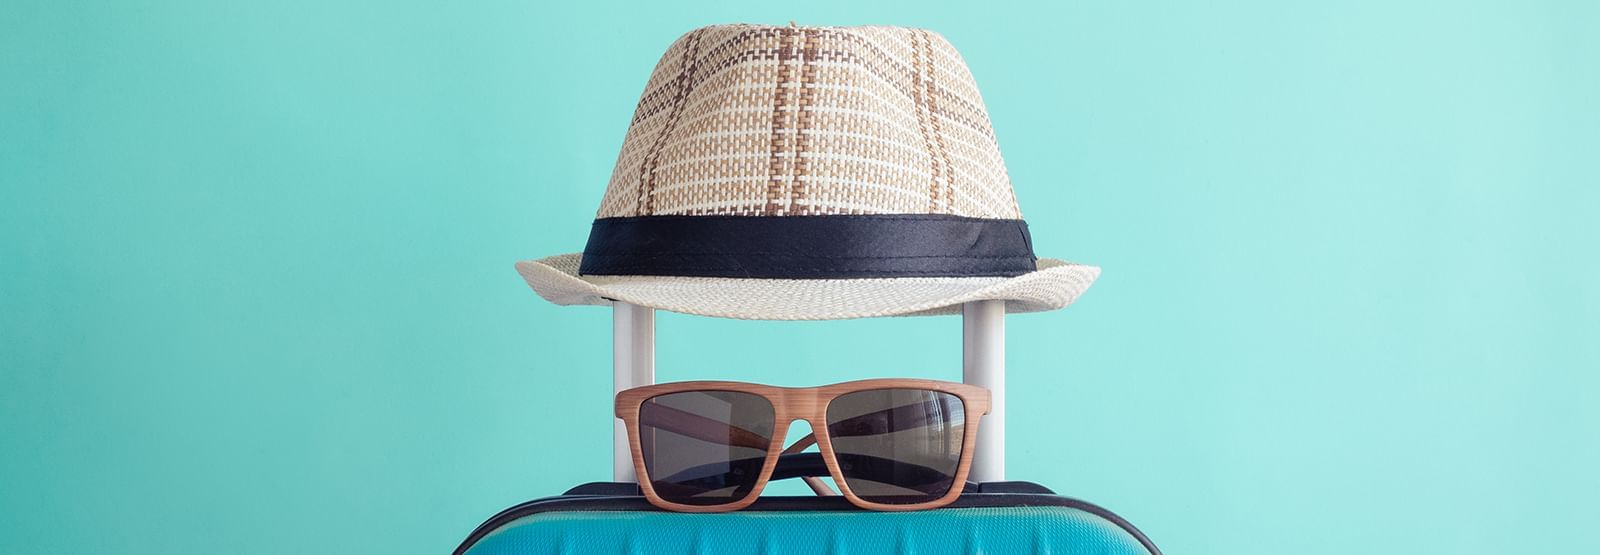 a hat and sunglasses on a rolling bag